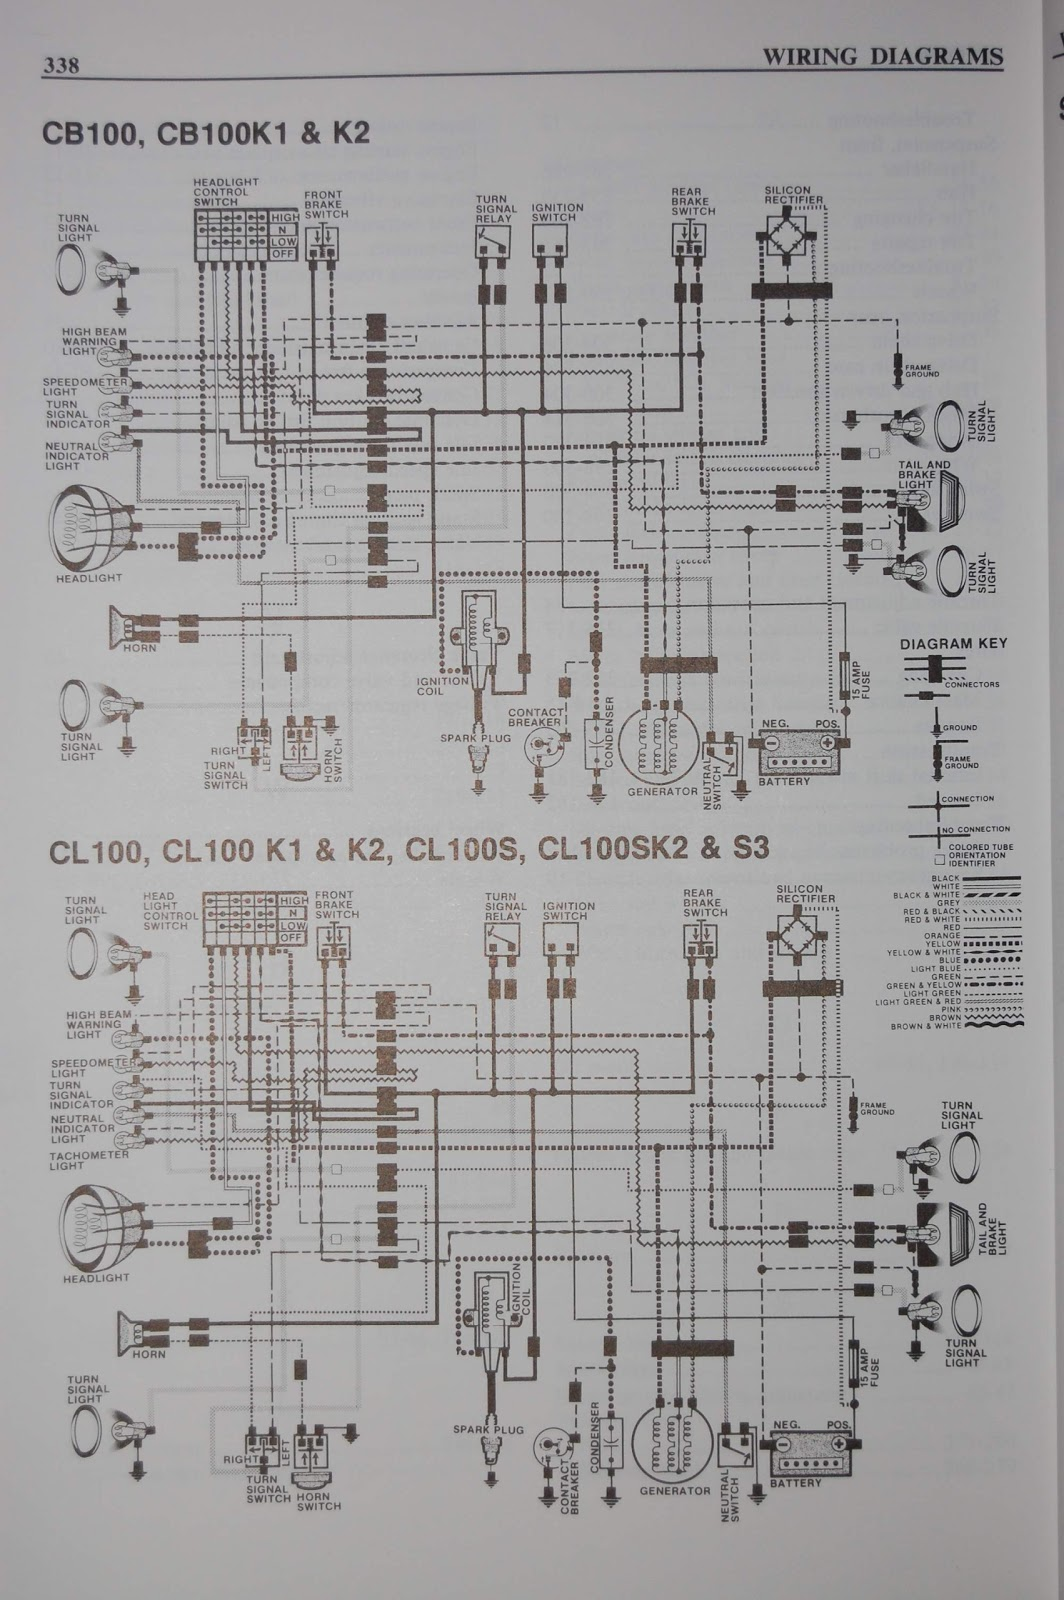 hight resolution of cb100 wiring diagram